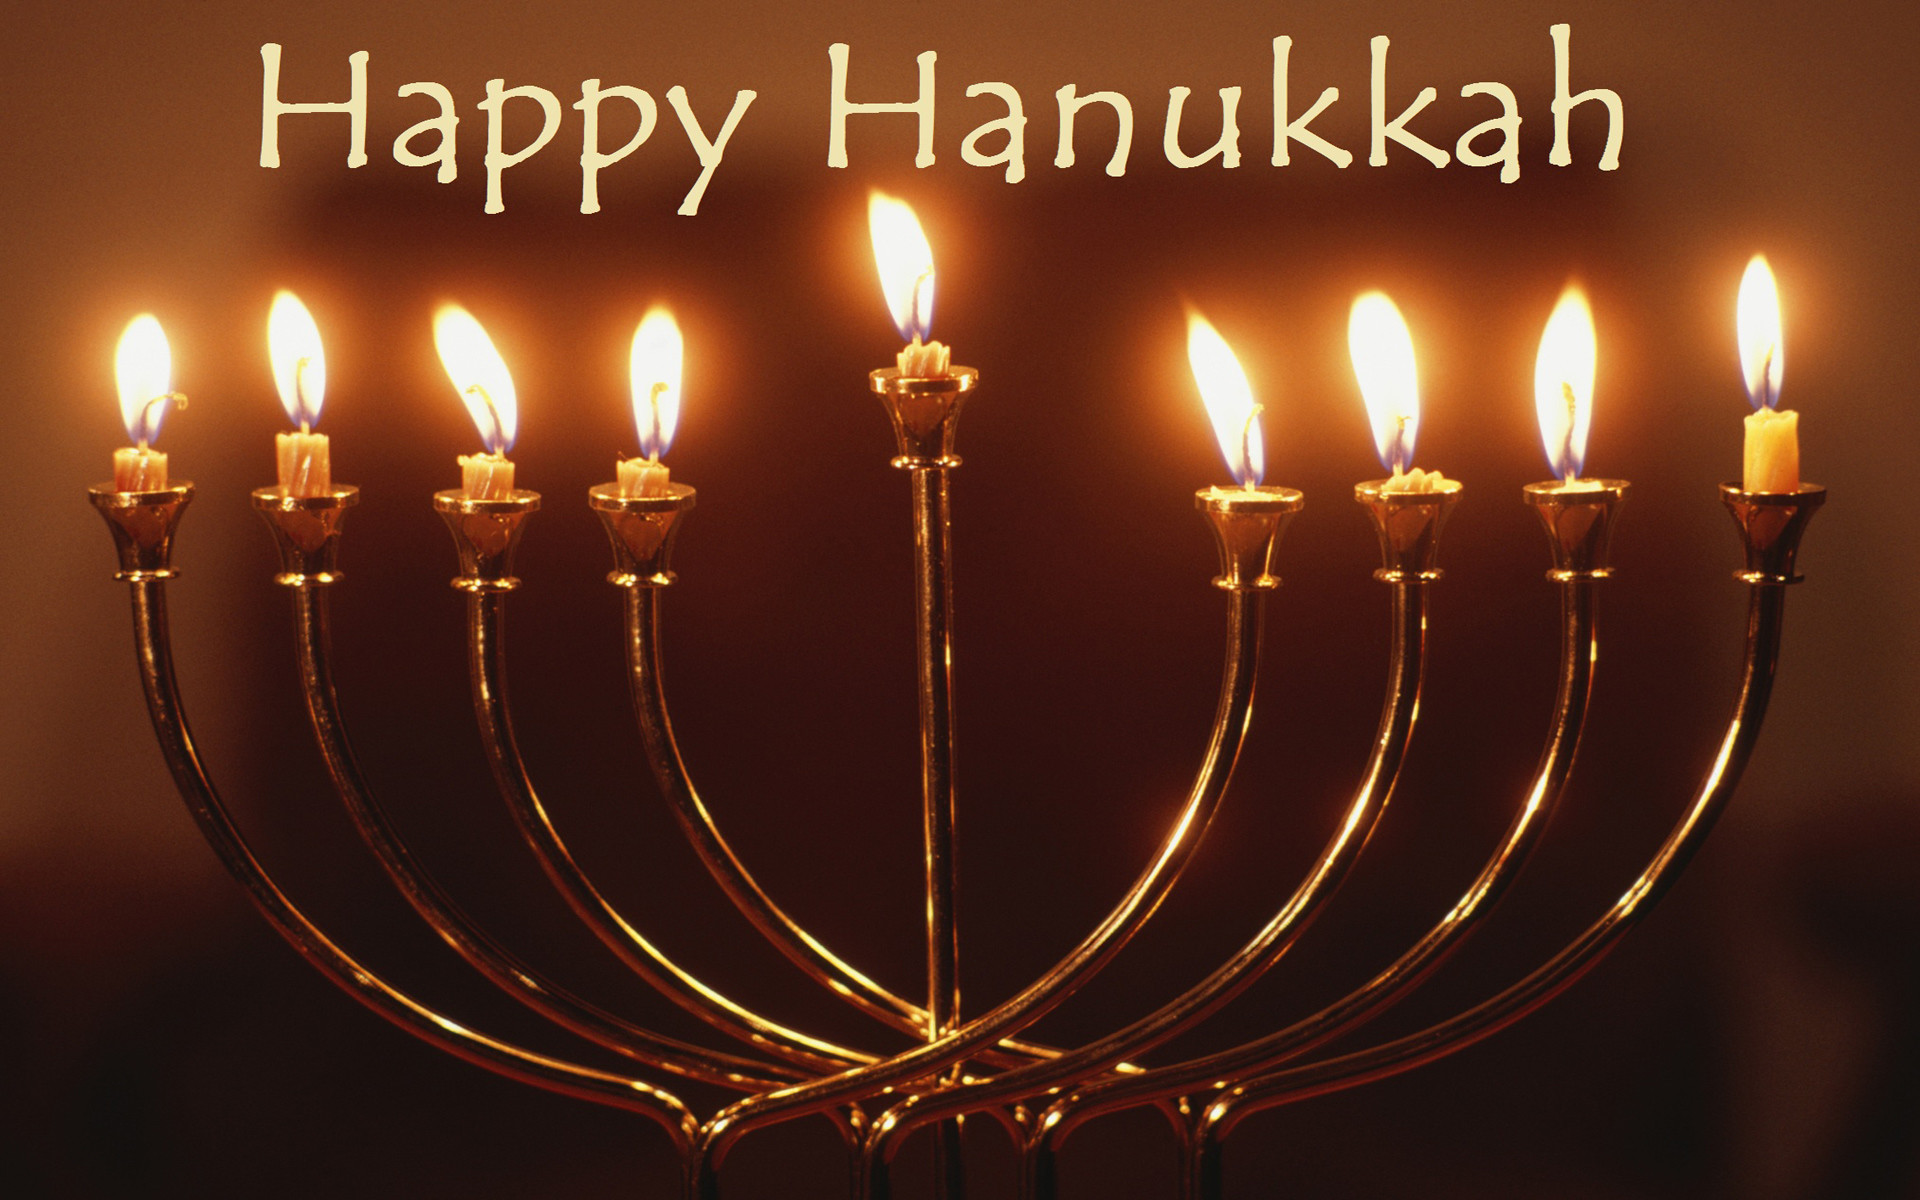 1920x1200 desktop wallpaper of happy hanukkah free computer desktop wallpaper .